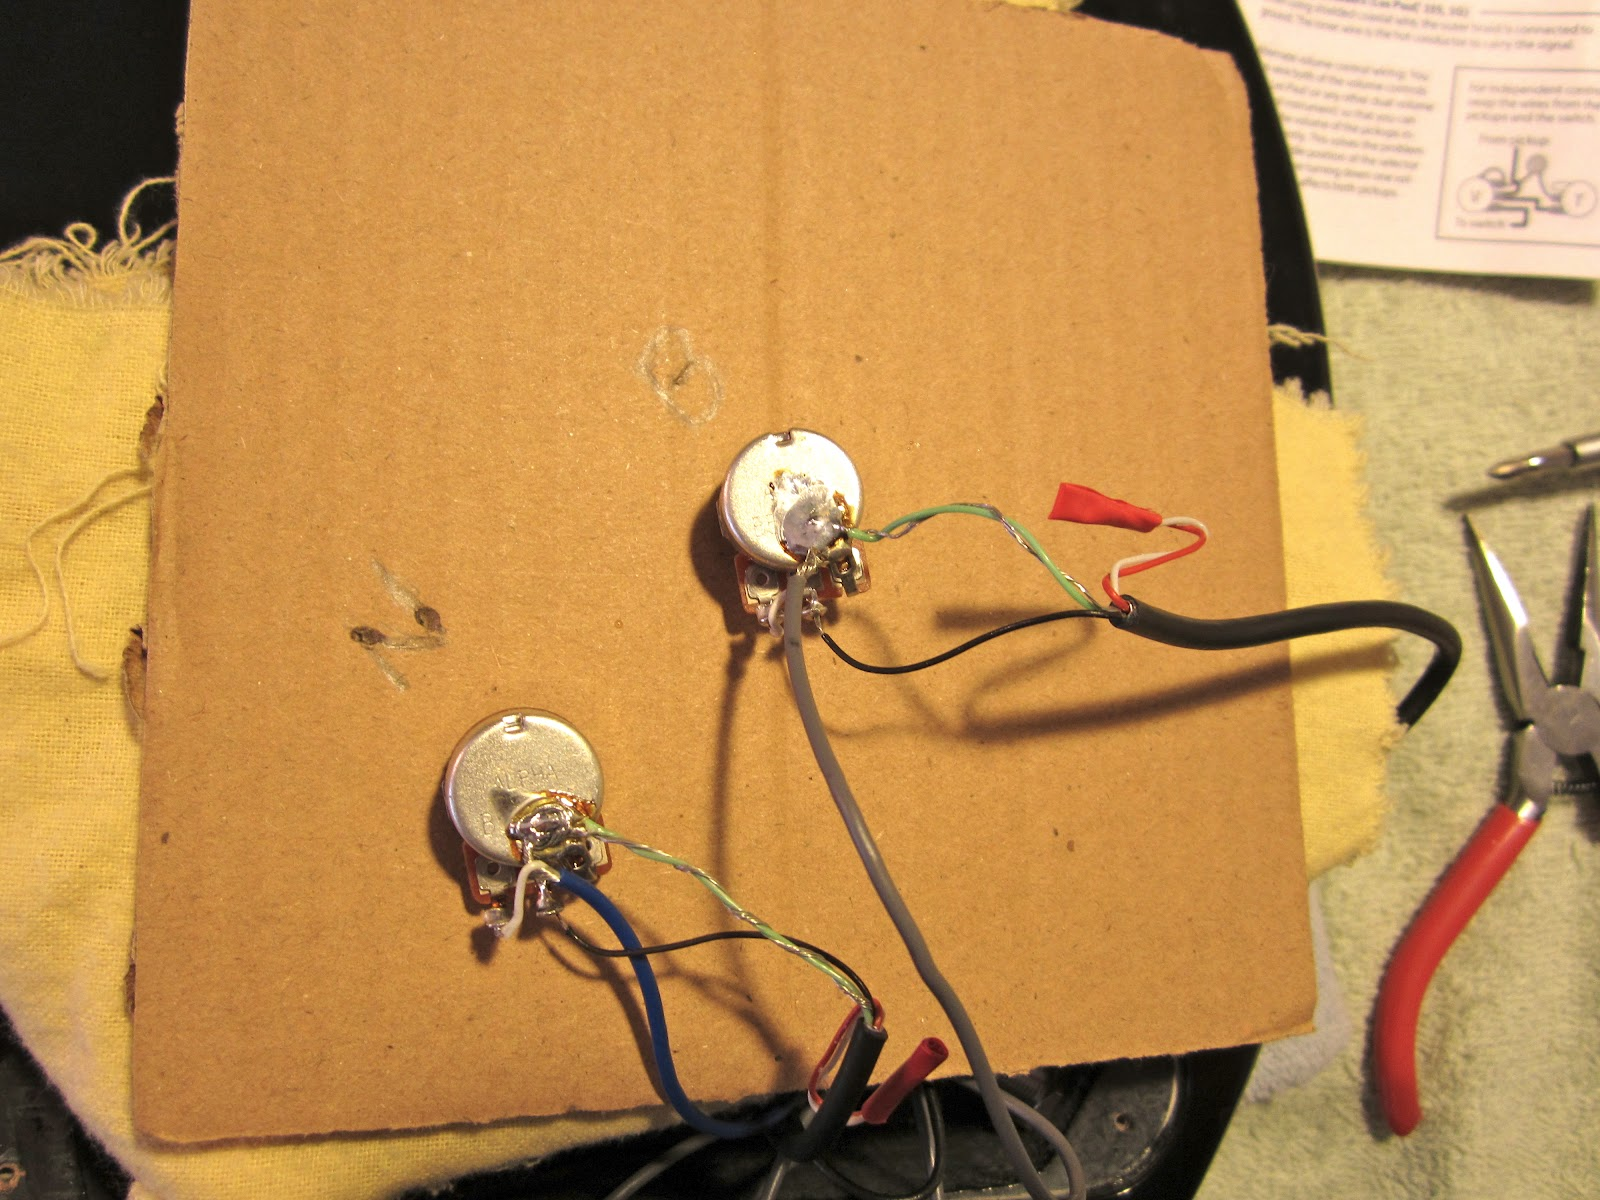 The Harvard Experiments Project 2 Pickup Replacement Hamer Xt Used Gibsonstyle Humbucking Set W Wiring Pots Switch And Soldering Leads To Volume With Cardboard As Support